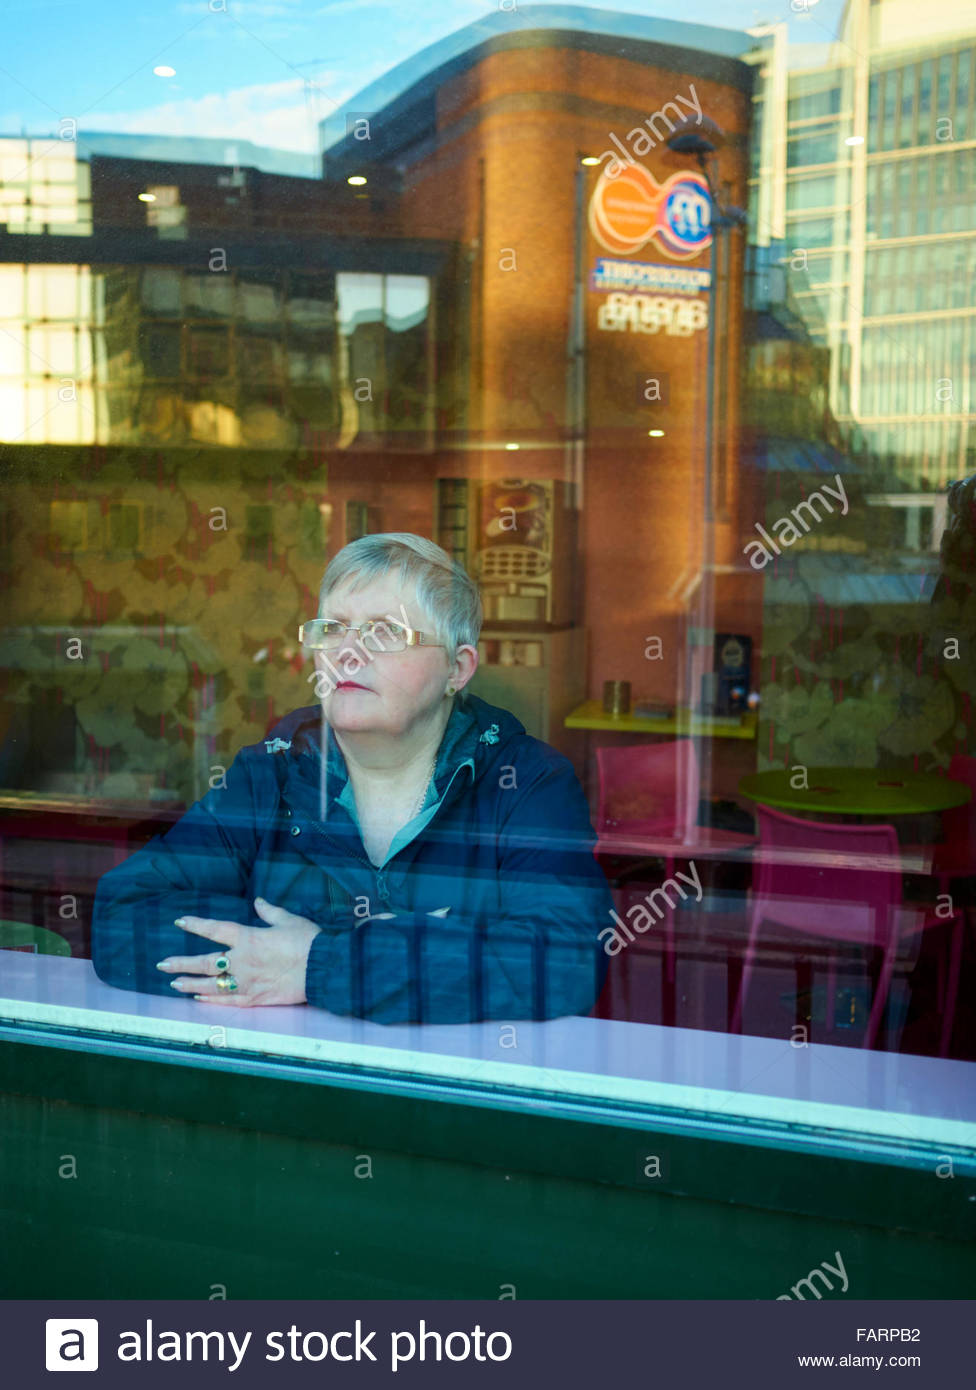 A woman with grey hair and wearing spectacles looking out of a cafe window and in deep thought Stock Photo